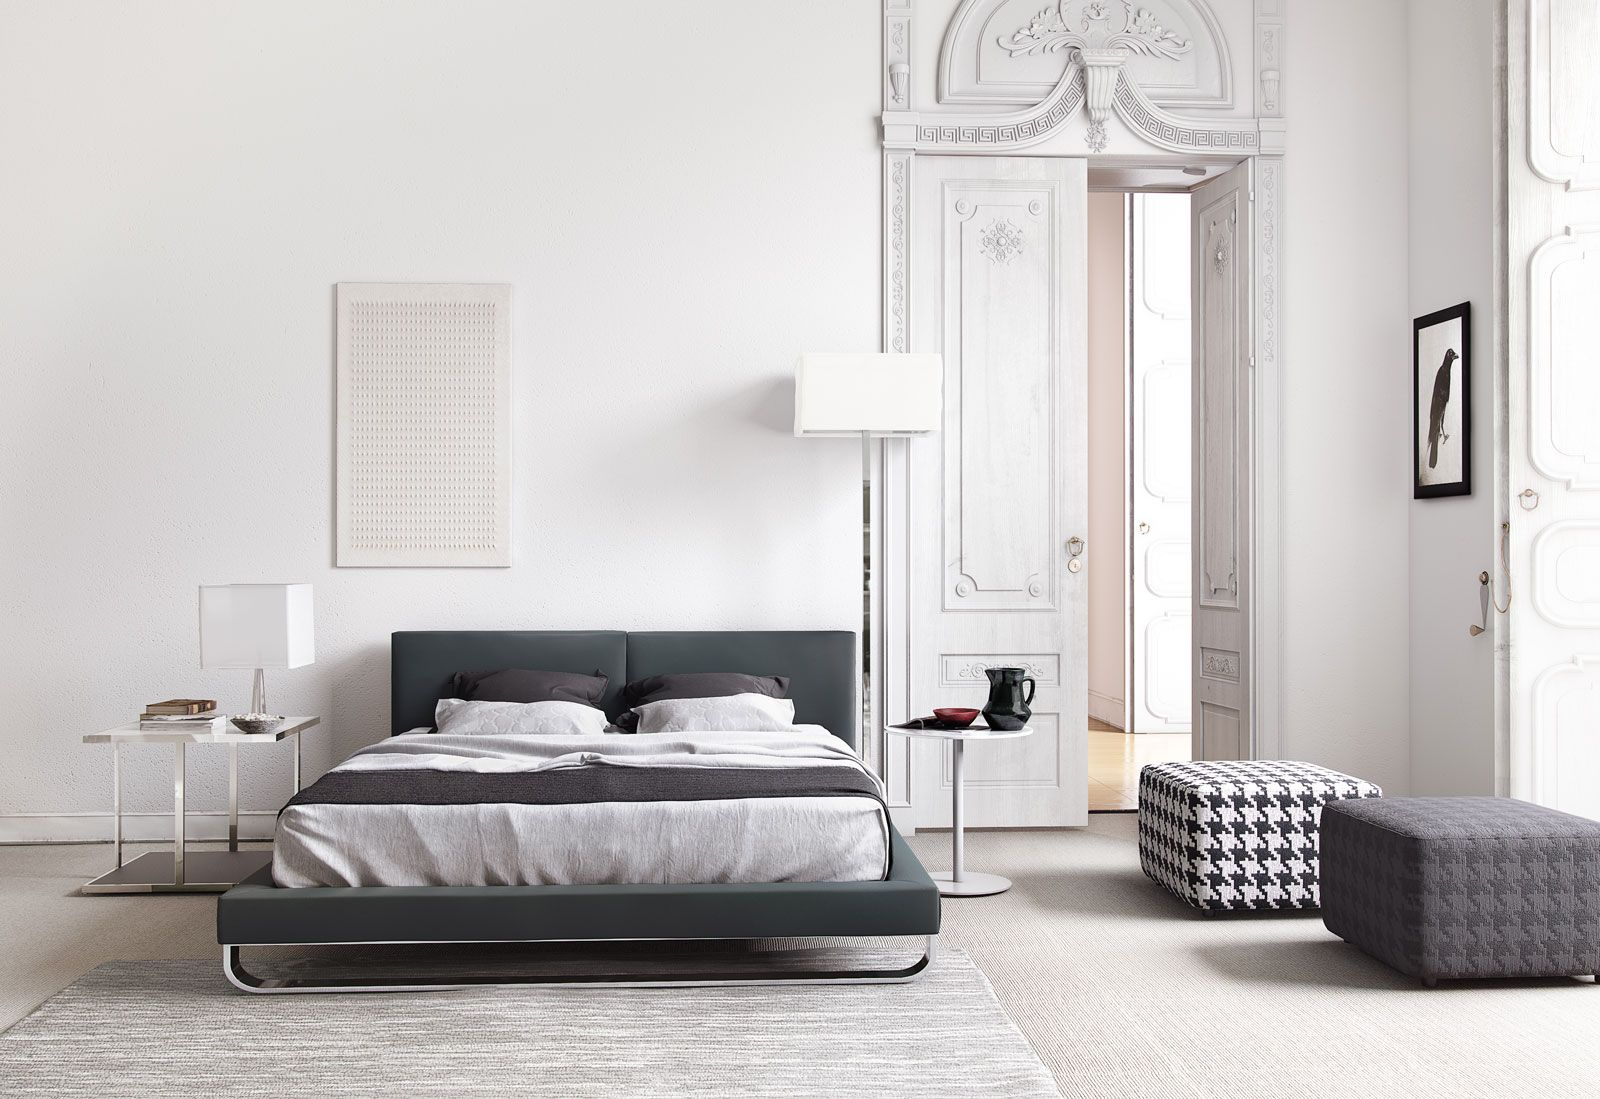 Modloft modern furniture Beds available for sale online or through your  local retailer